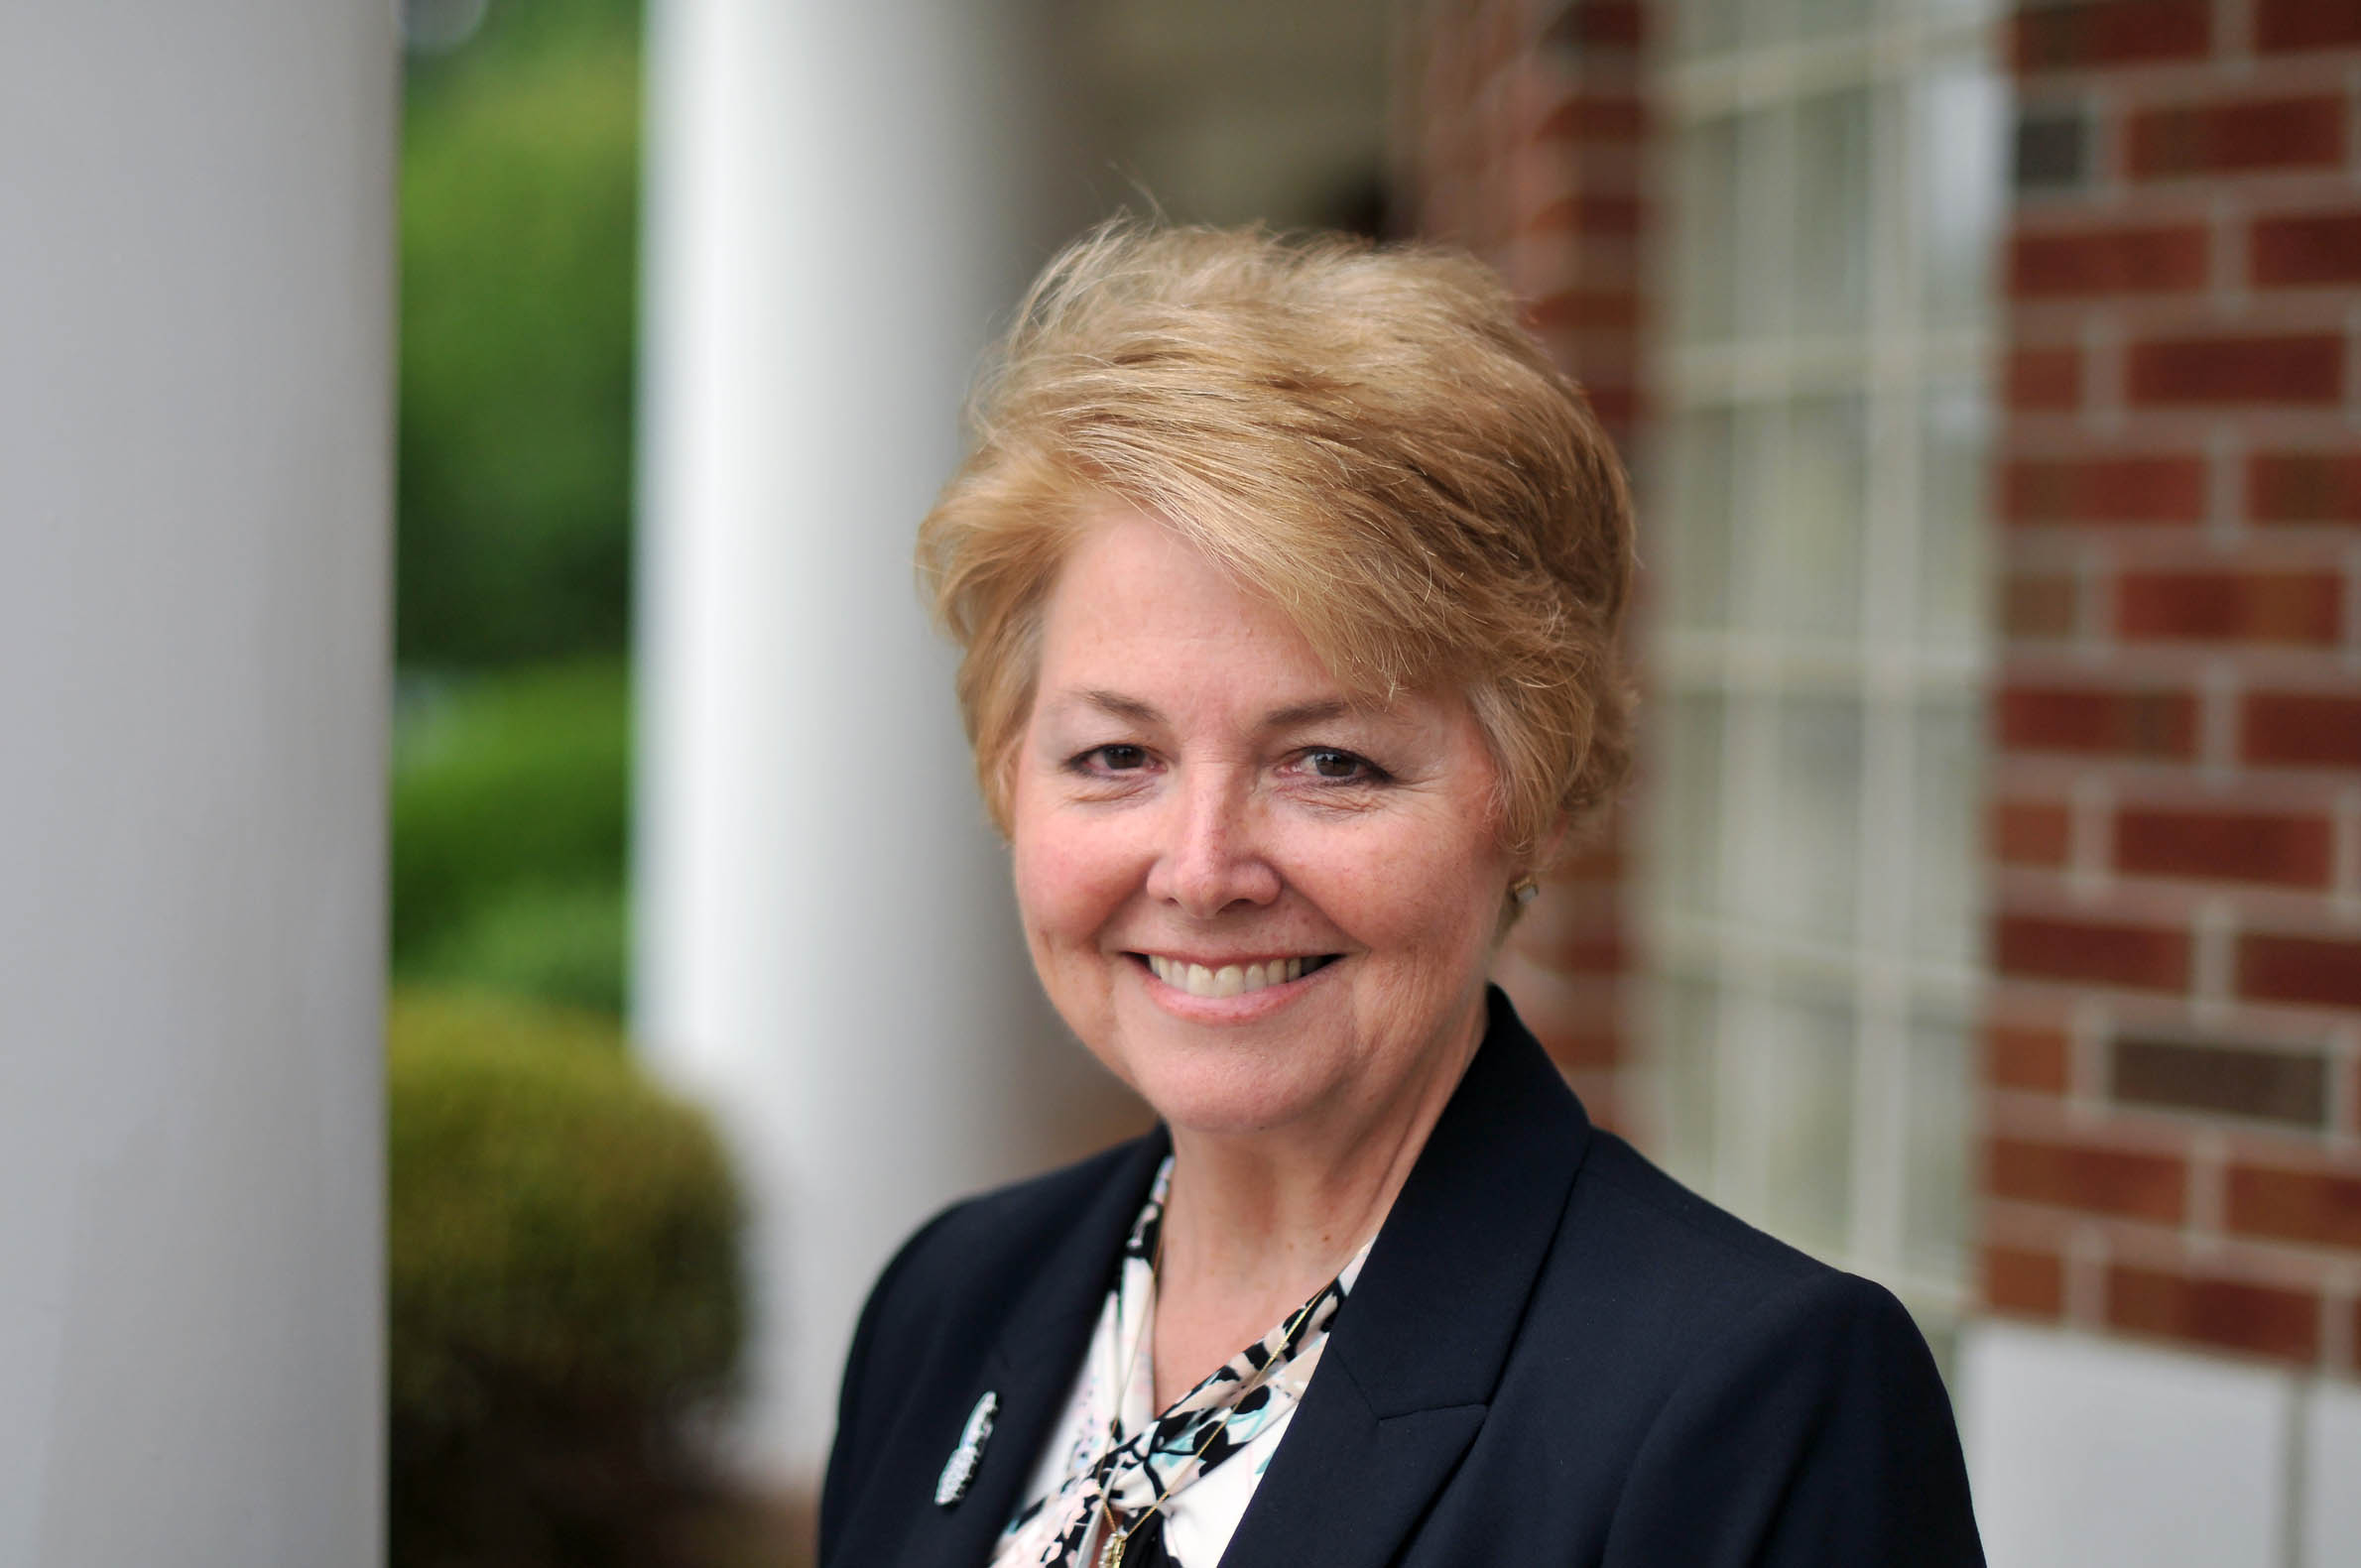 Click to enlarge,  Dr. Lisa M. Chapman, President of Central Carolina Community College, has been selected by the Aspen Institute to join the 2020-21 inaugural class of the Aspen New Presidents Fellowship, a new initiative designed to support community college presidents in the early years of their tenure to accelerate transformational change on behalf of students.